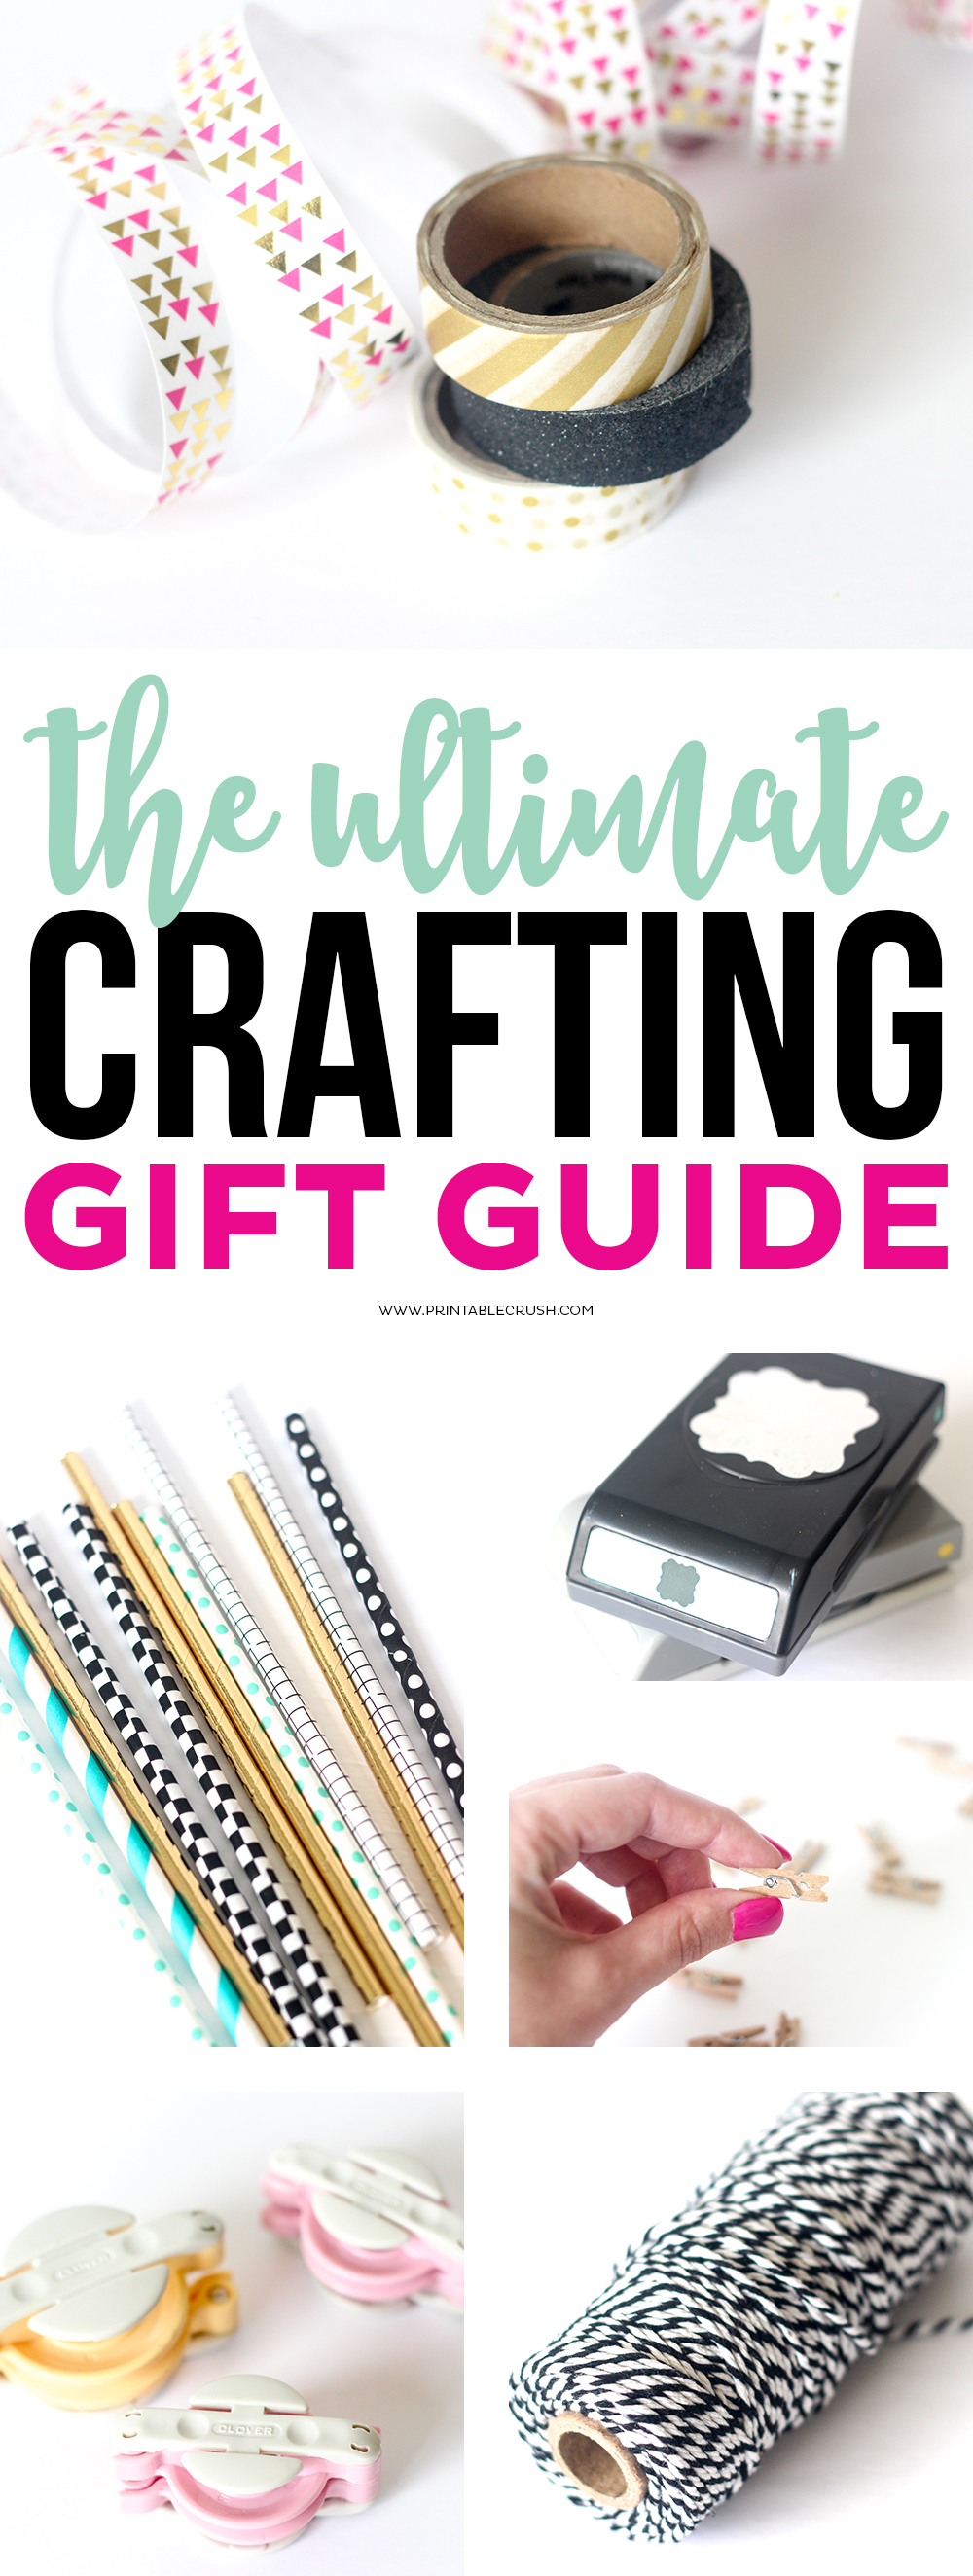 Check those items off your Christmas list using this Ultimate Crafting Gift Guide! Find ideas for printables, party planning, DIY projects and more!